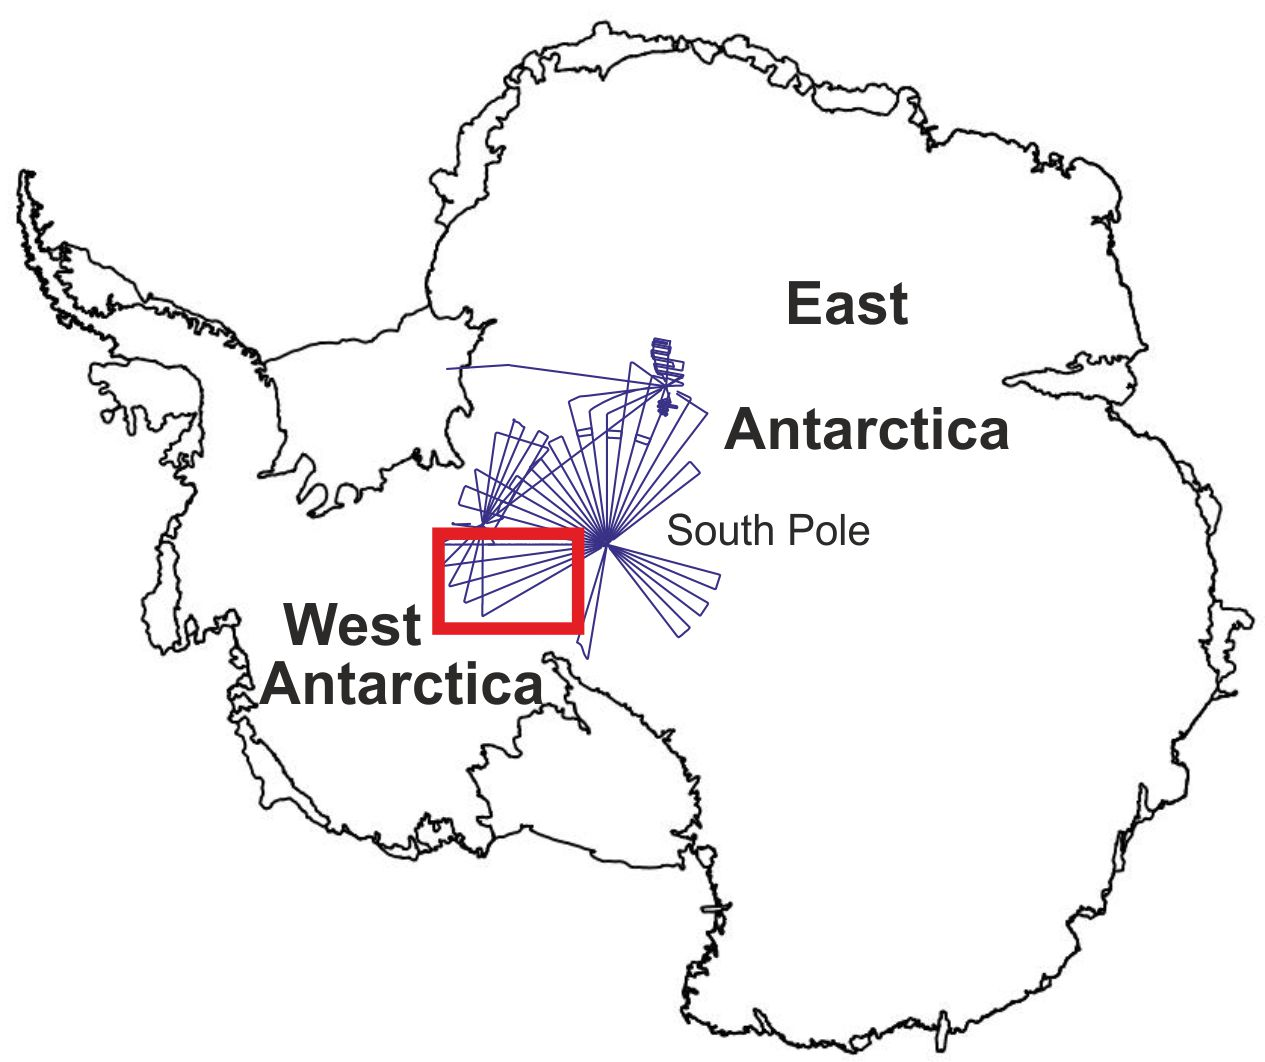 Subglacial Valleys And Mountain Ranges Discovered Near